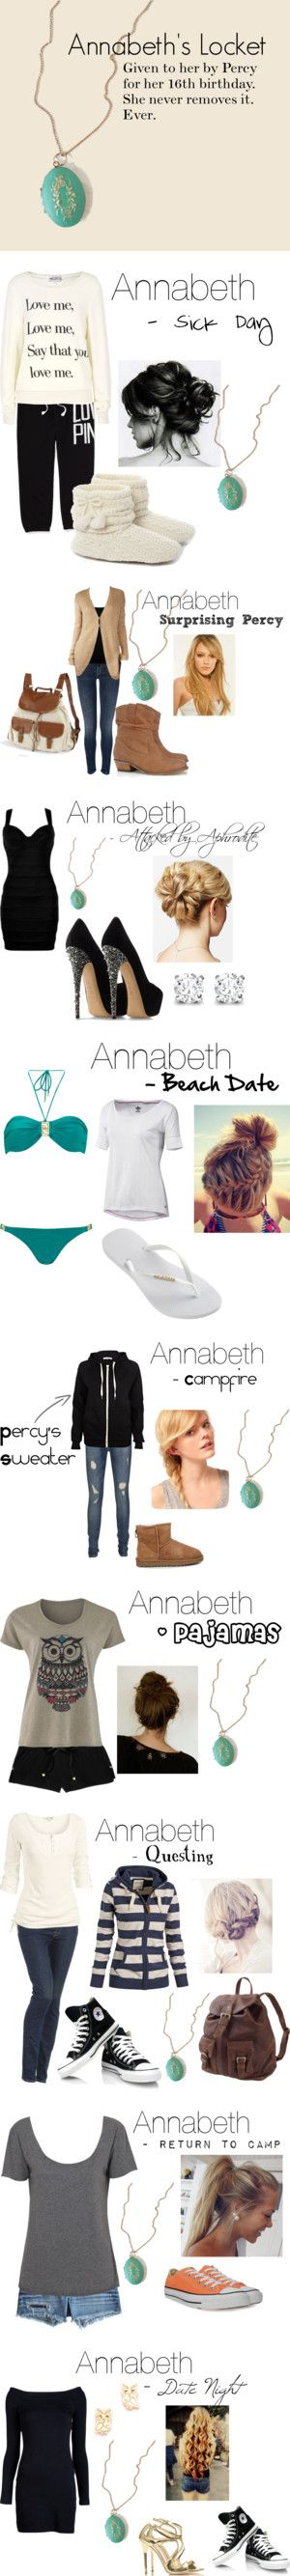 """Percy Jackson & The Olympians: Annabeth"" by dyingjusttoknowyourname ¦ liked on Polyvore"